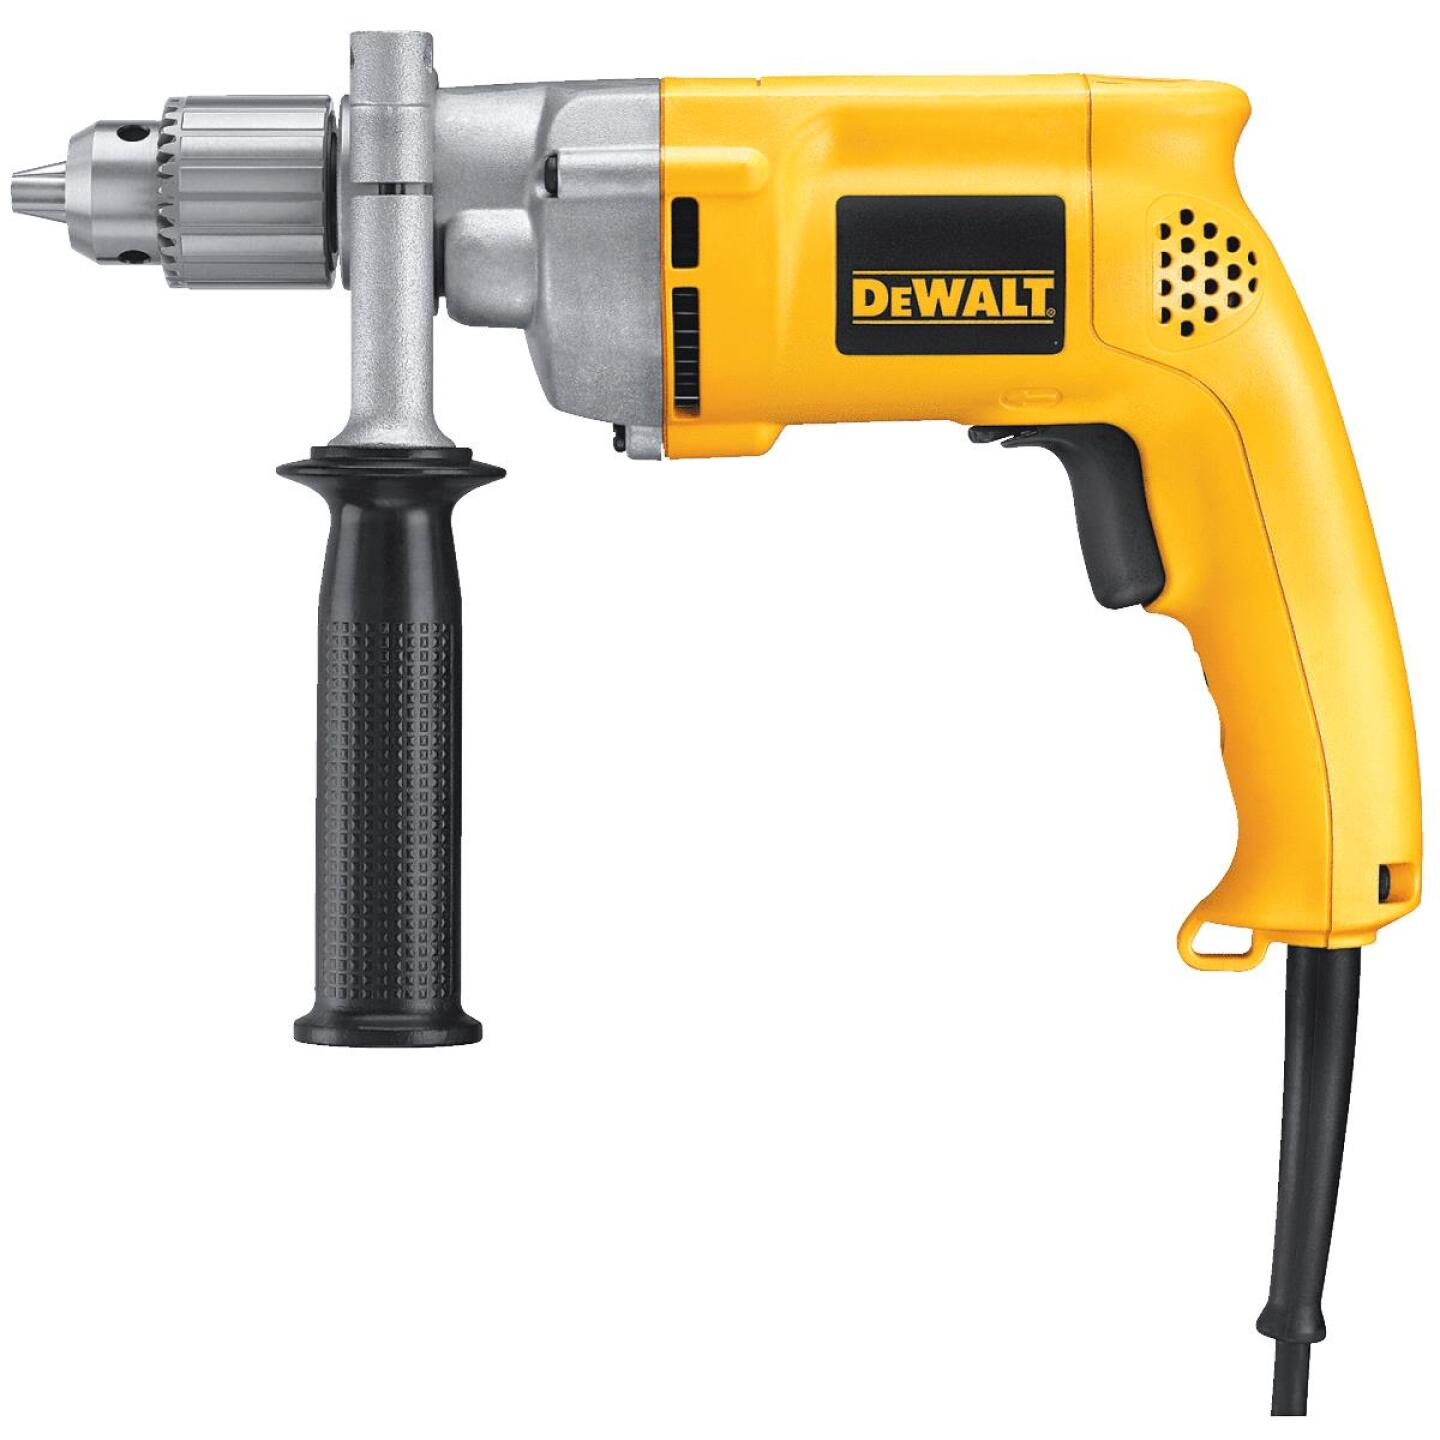 DeWalt 1/2 In. 8.5-Amp Keyed Electric Drill Image 1